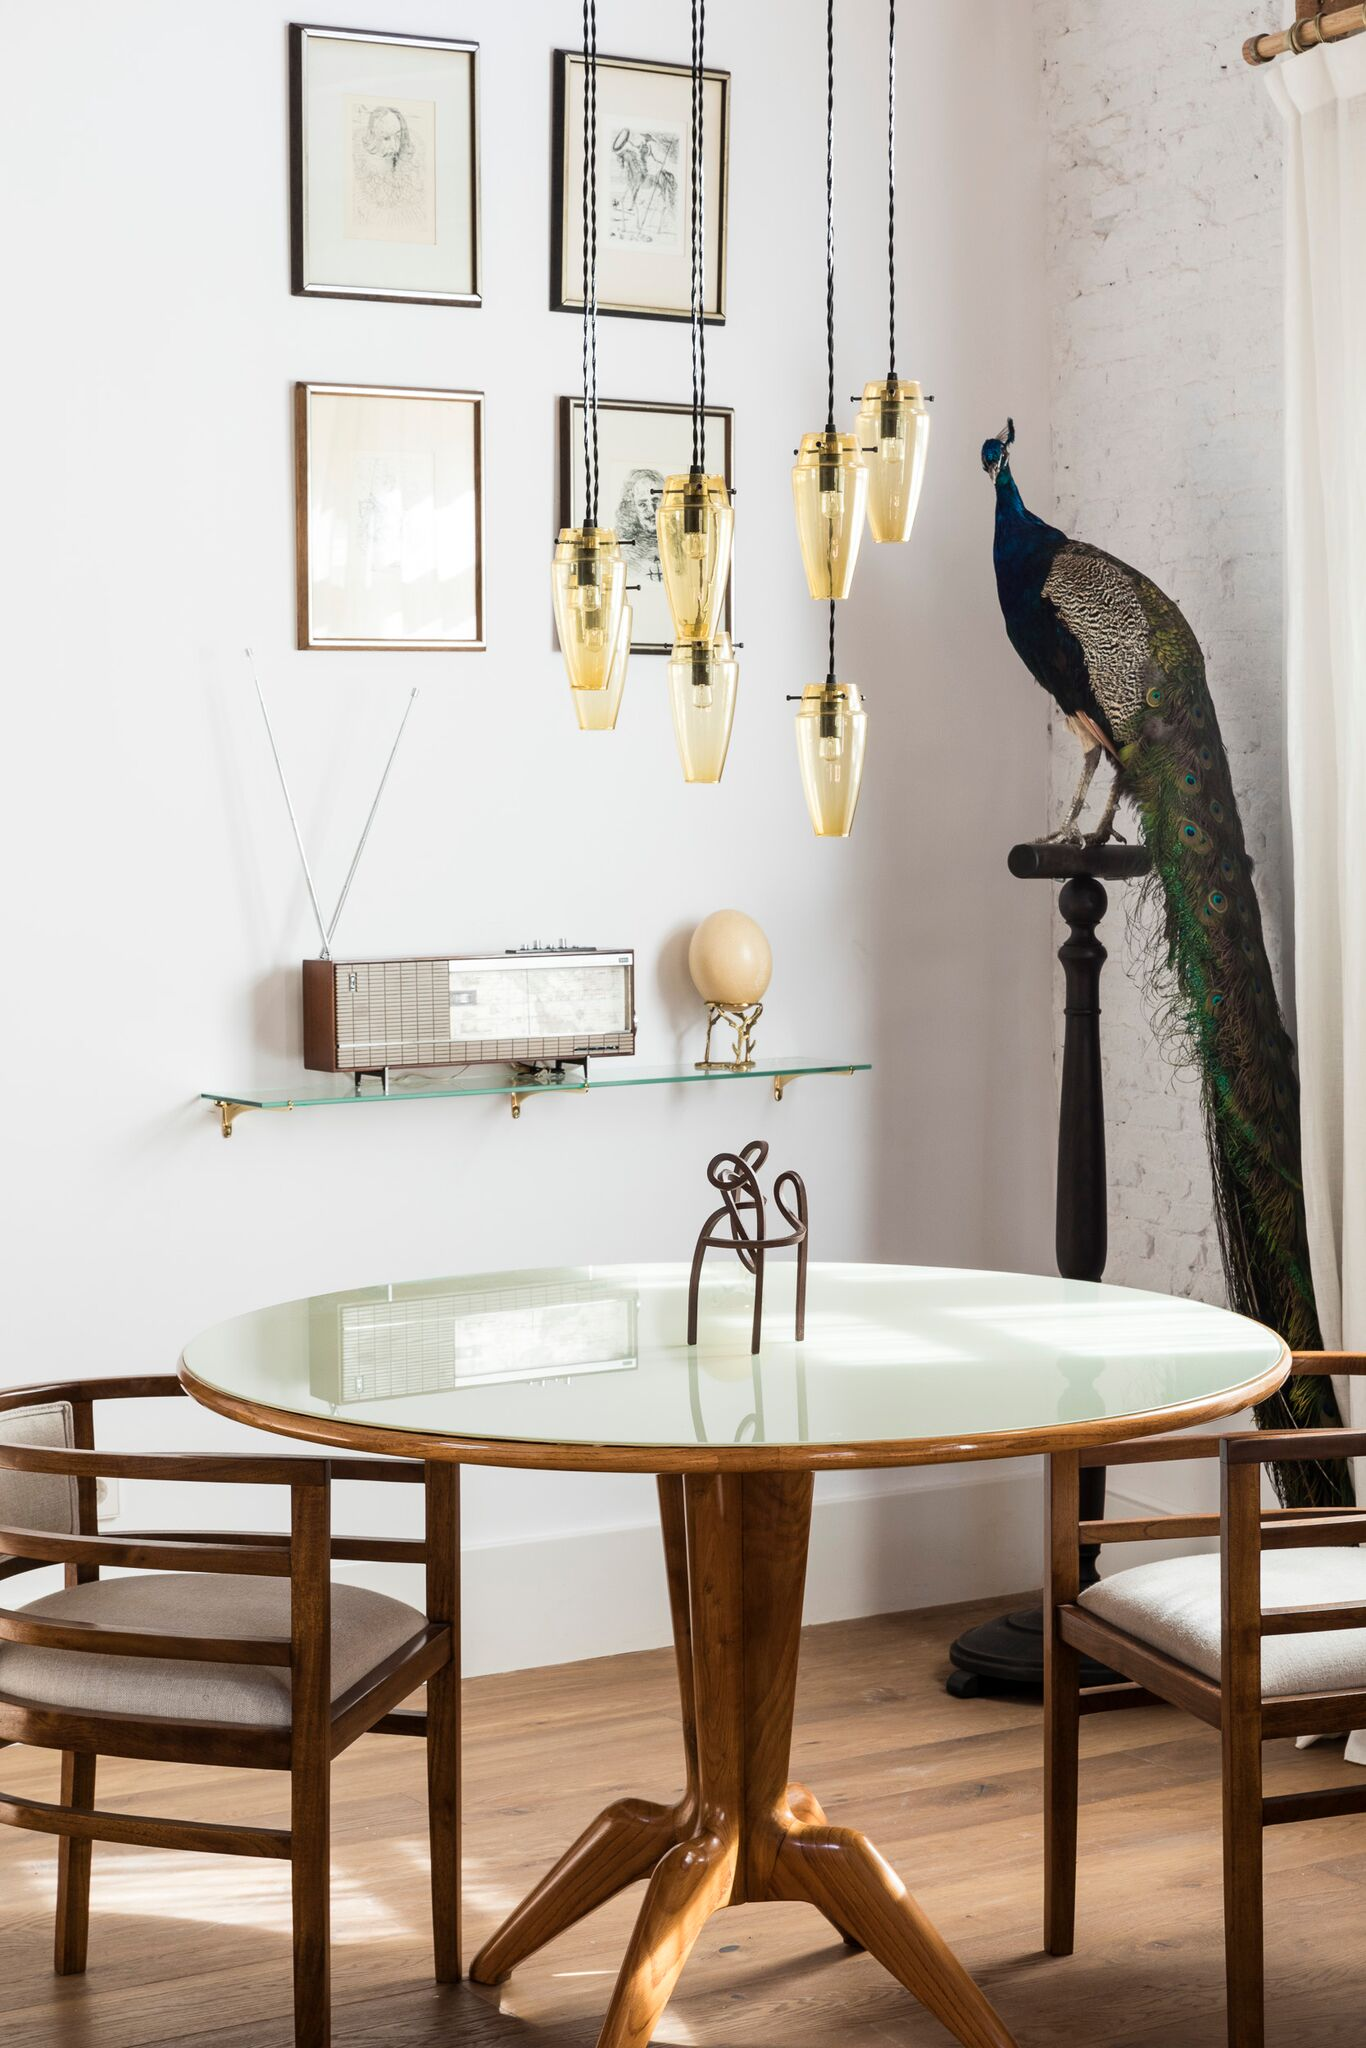 spanish interior design Spanish Interior Design Alert: A Mid-Century Lifestyle by A&B Curated VBuftUbI